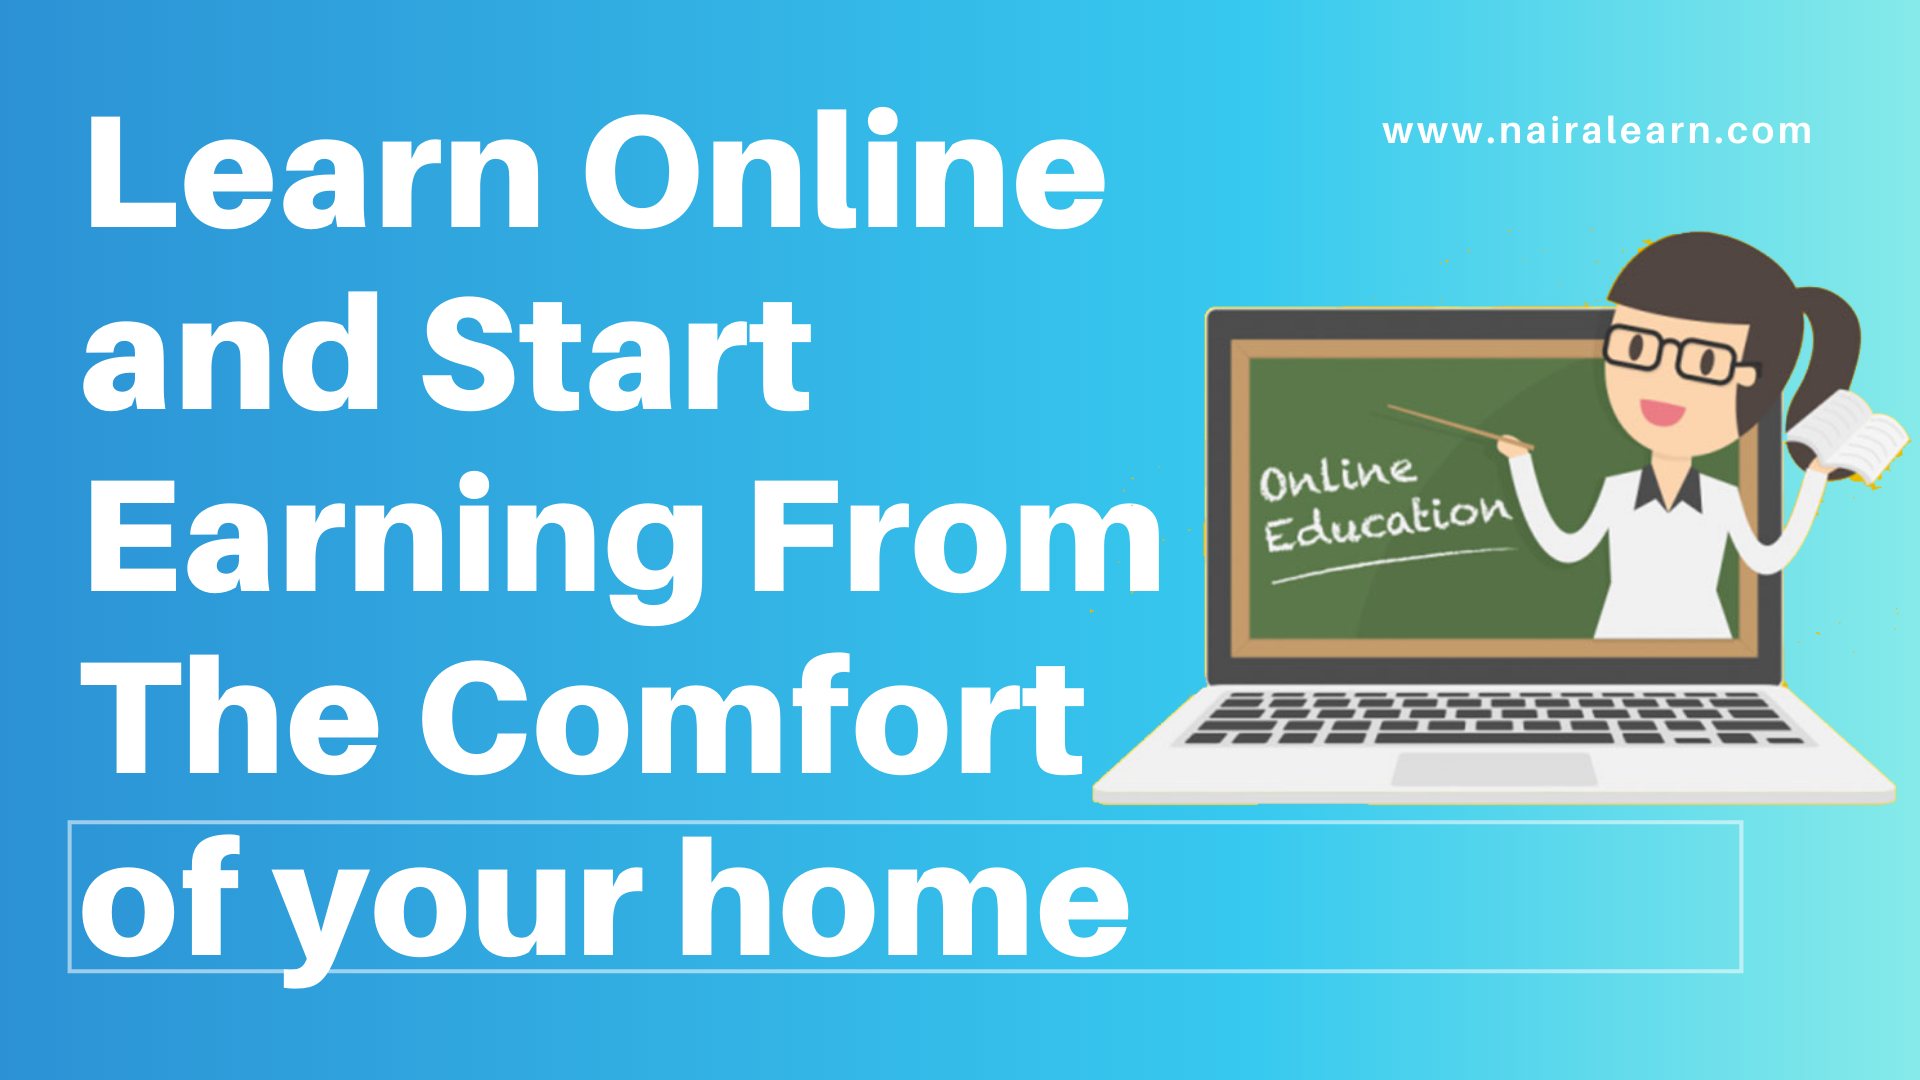 Learn Online and Start Earning From The Comfort of your home